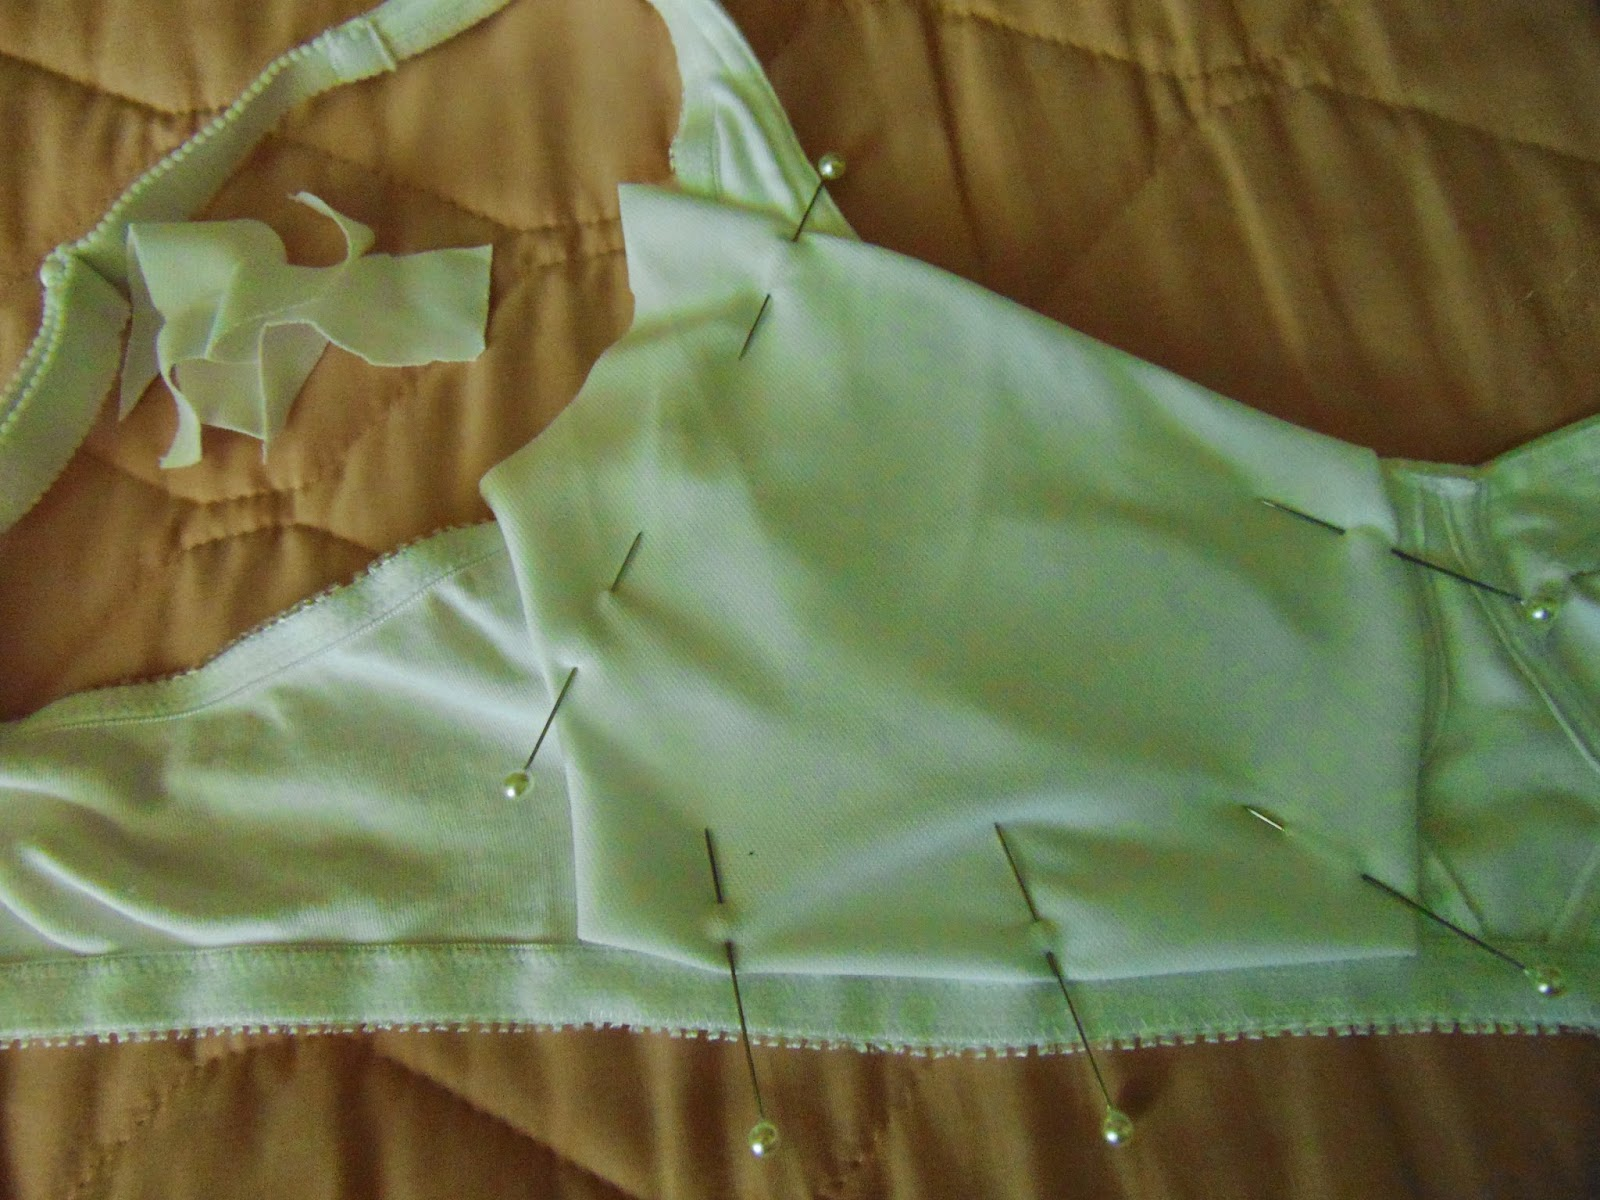 White bra with fabric square edges folded under and pinned in place